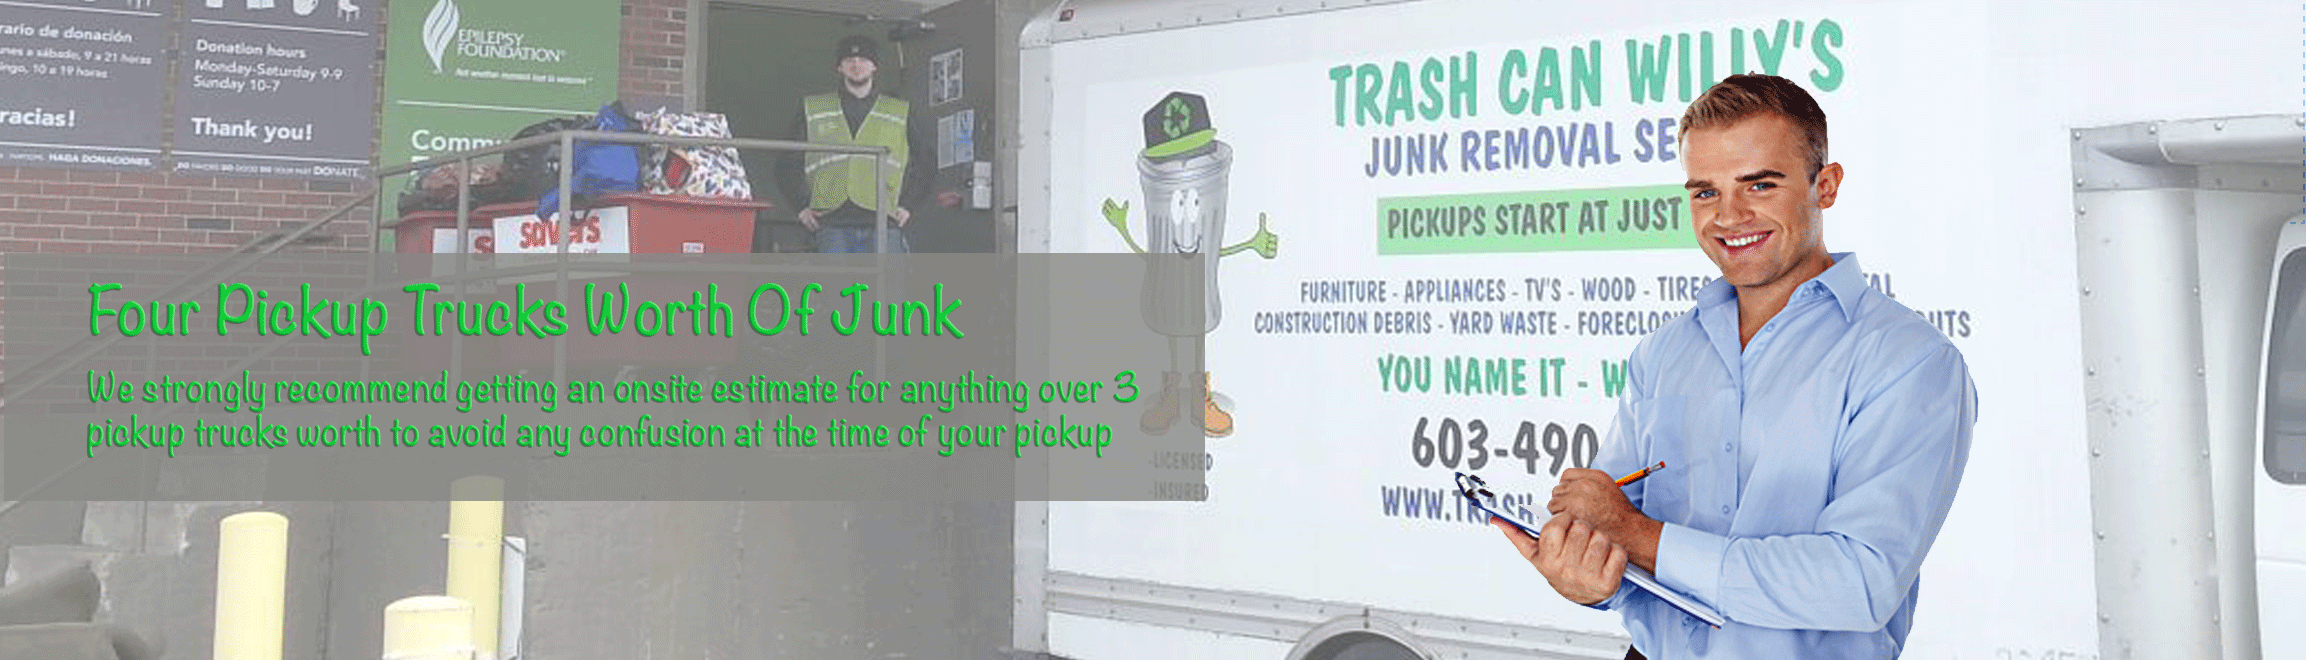 junk removal pricing on 4 or more junk removal pickup trucks worth